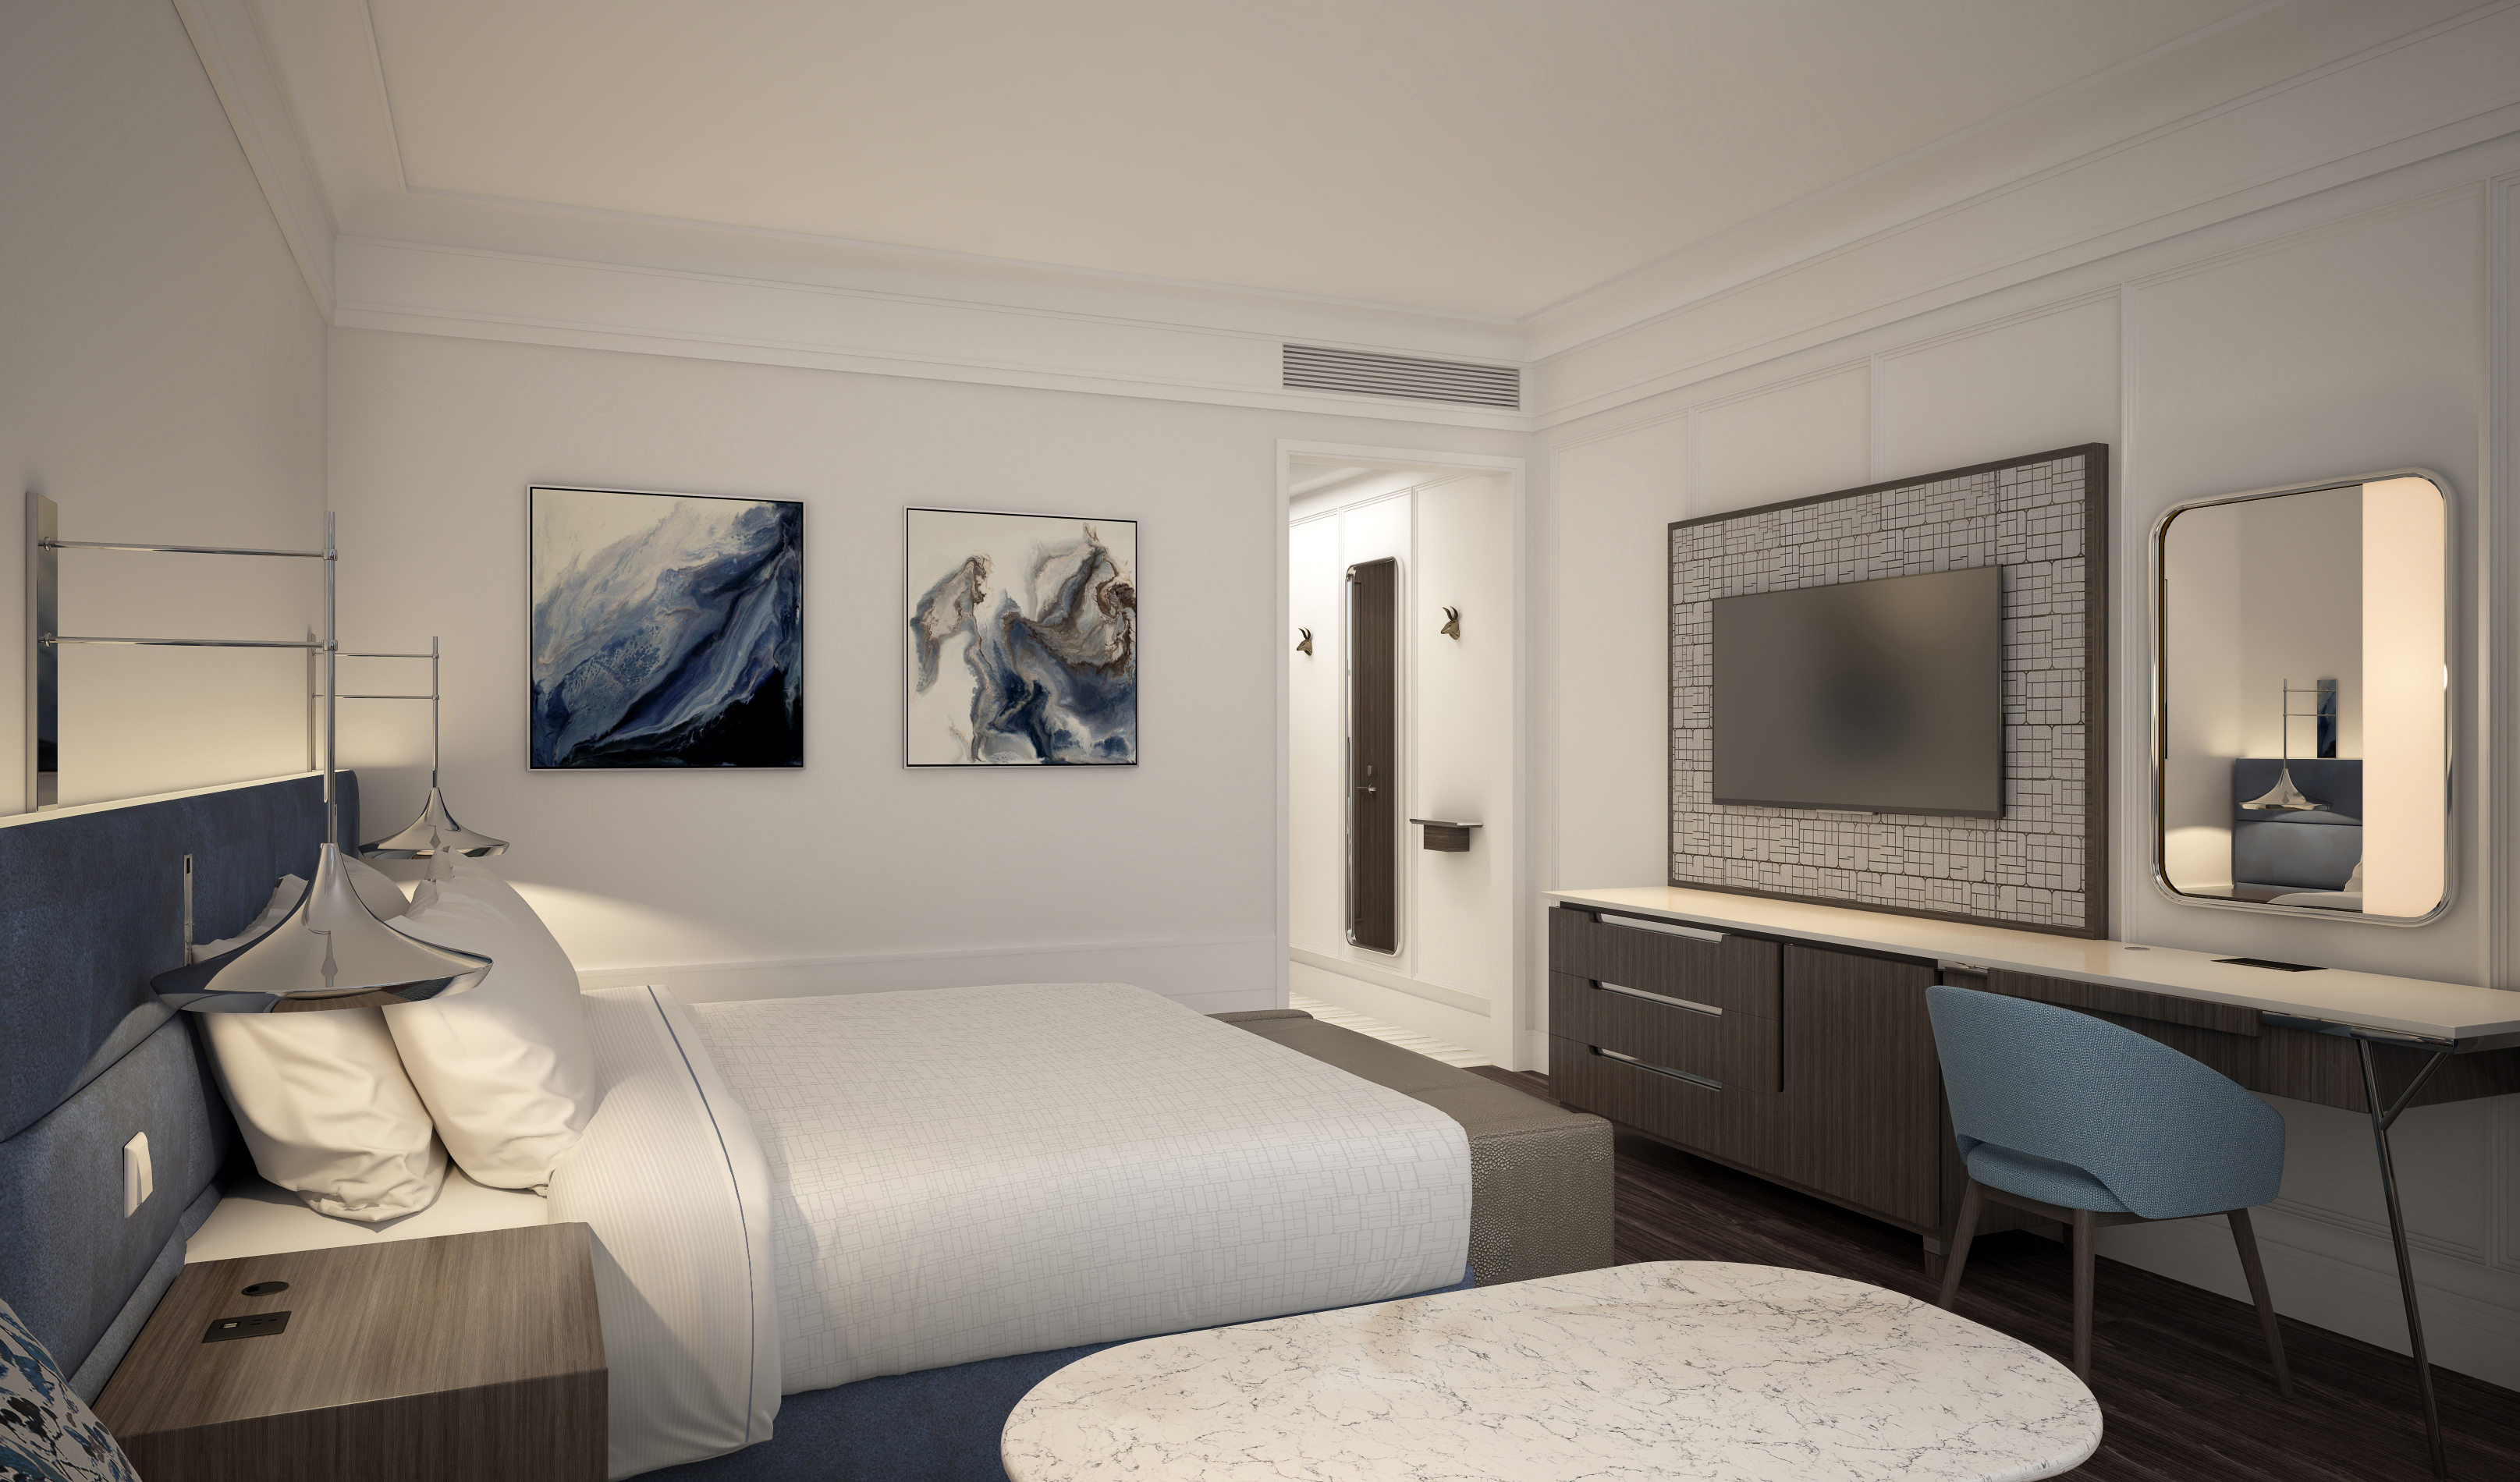 Earlier this year, Wyndham Hotels announced that it would be making Delos' Stay Well rooms part of its brand standards.